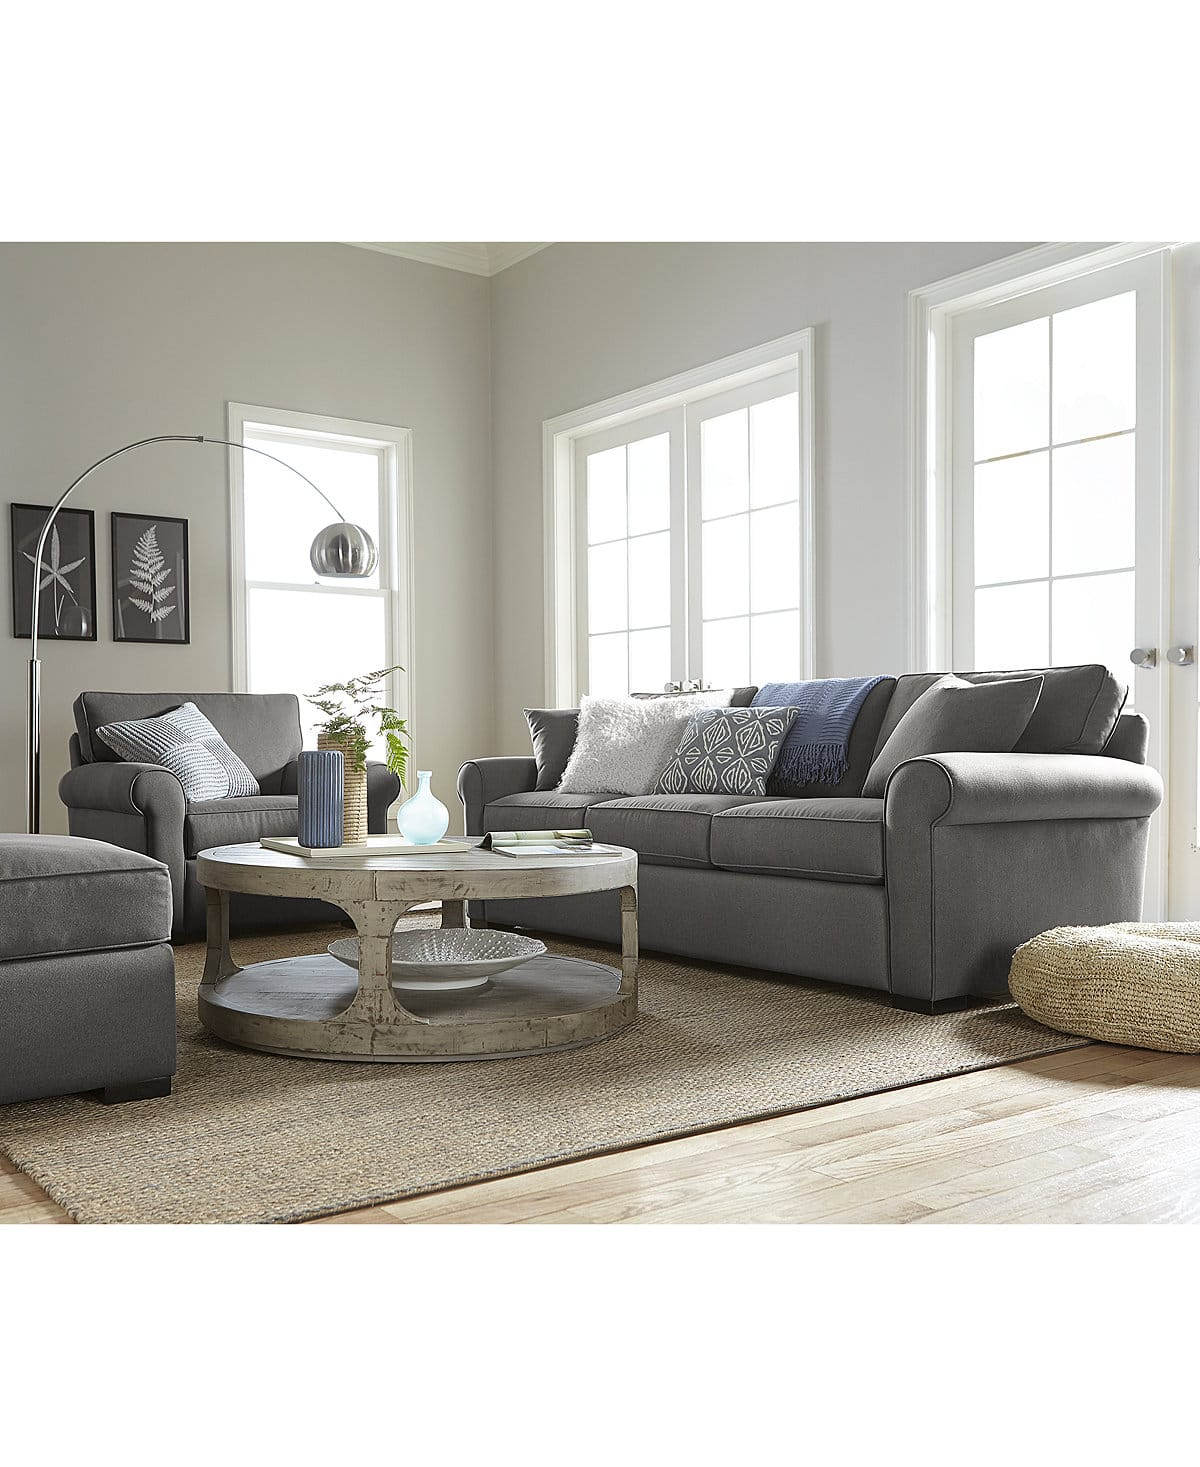 Macy's: Kenton Fabric Sofa, Now $599